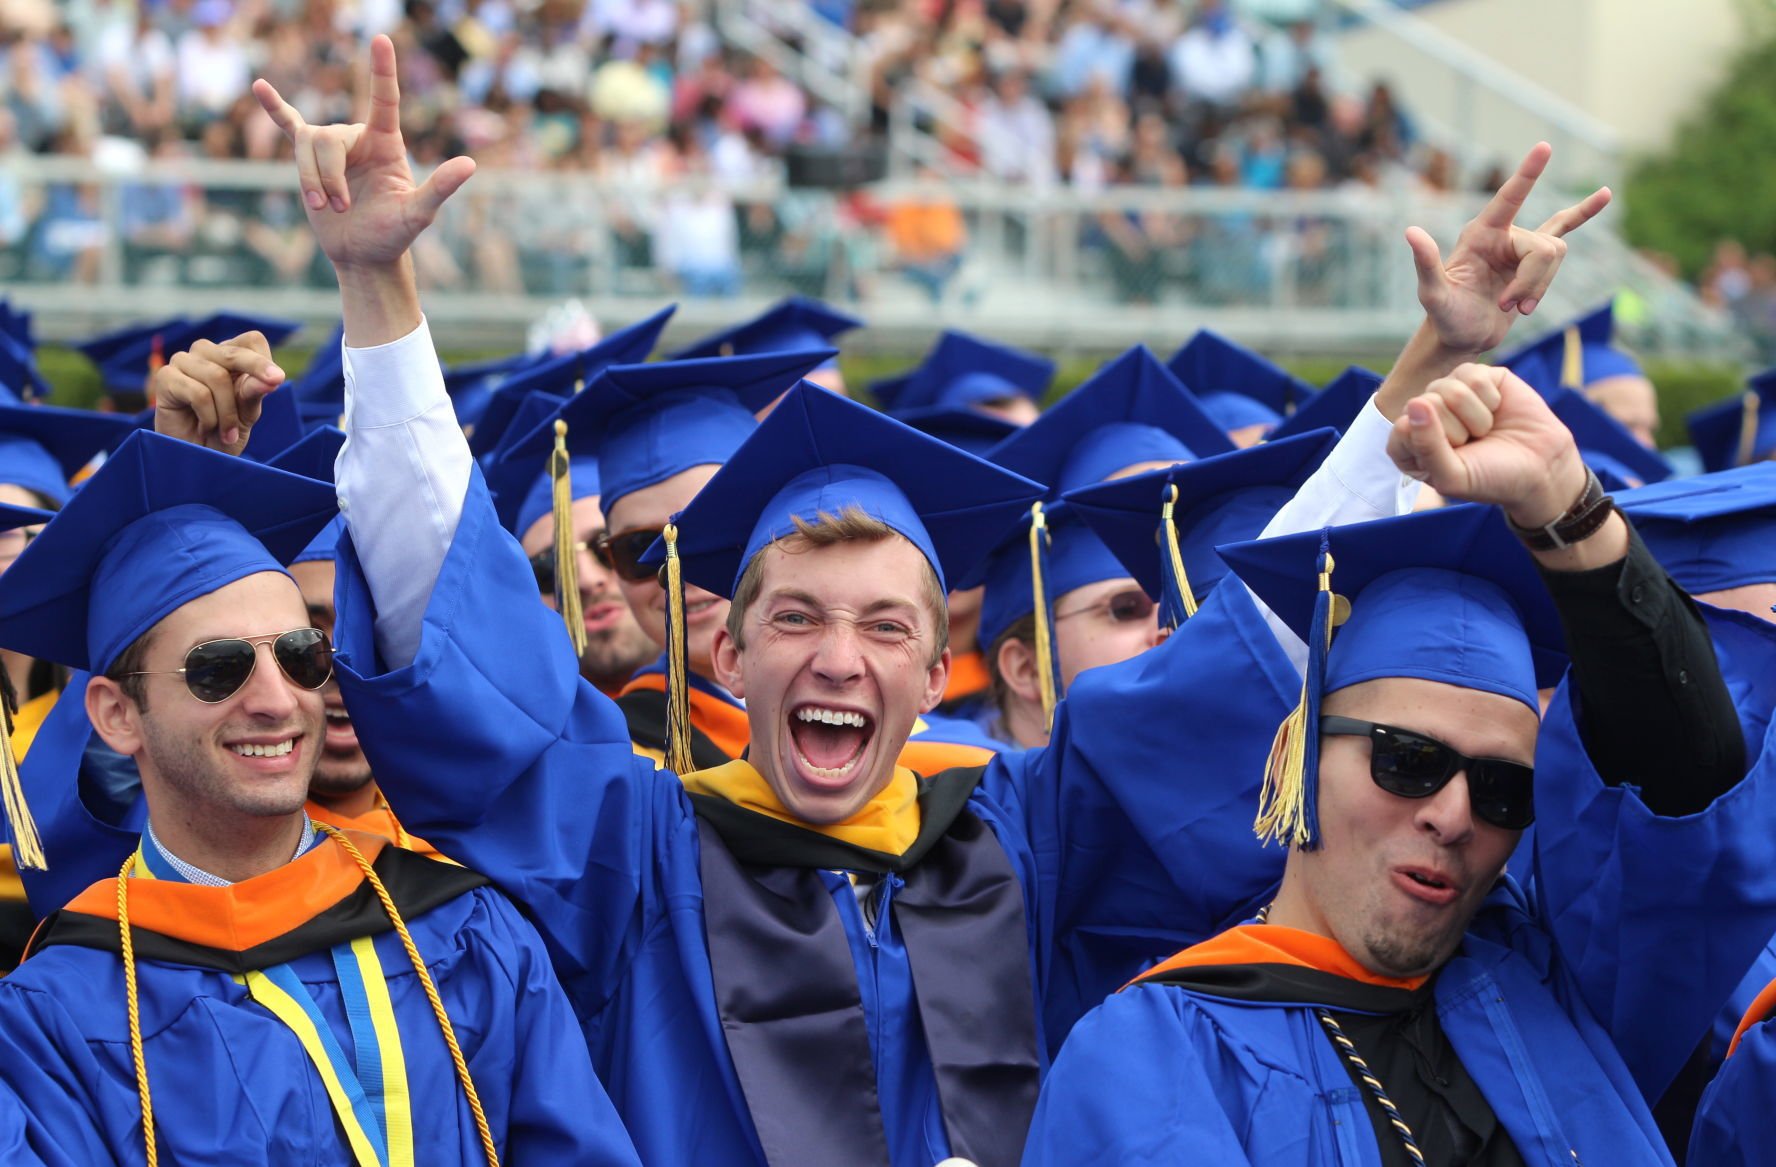 Stadium construction to restrict attendance at UD's commencement | Newark Post